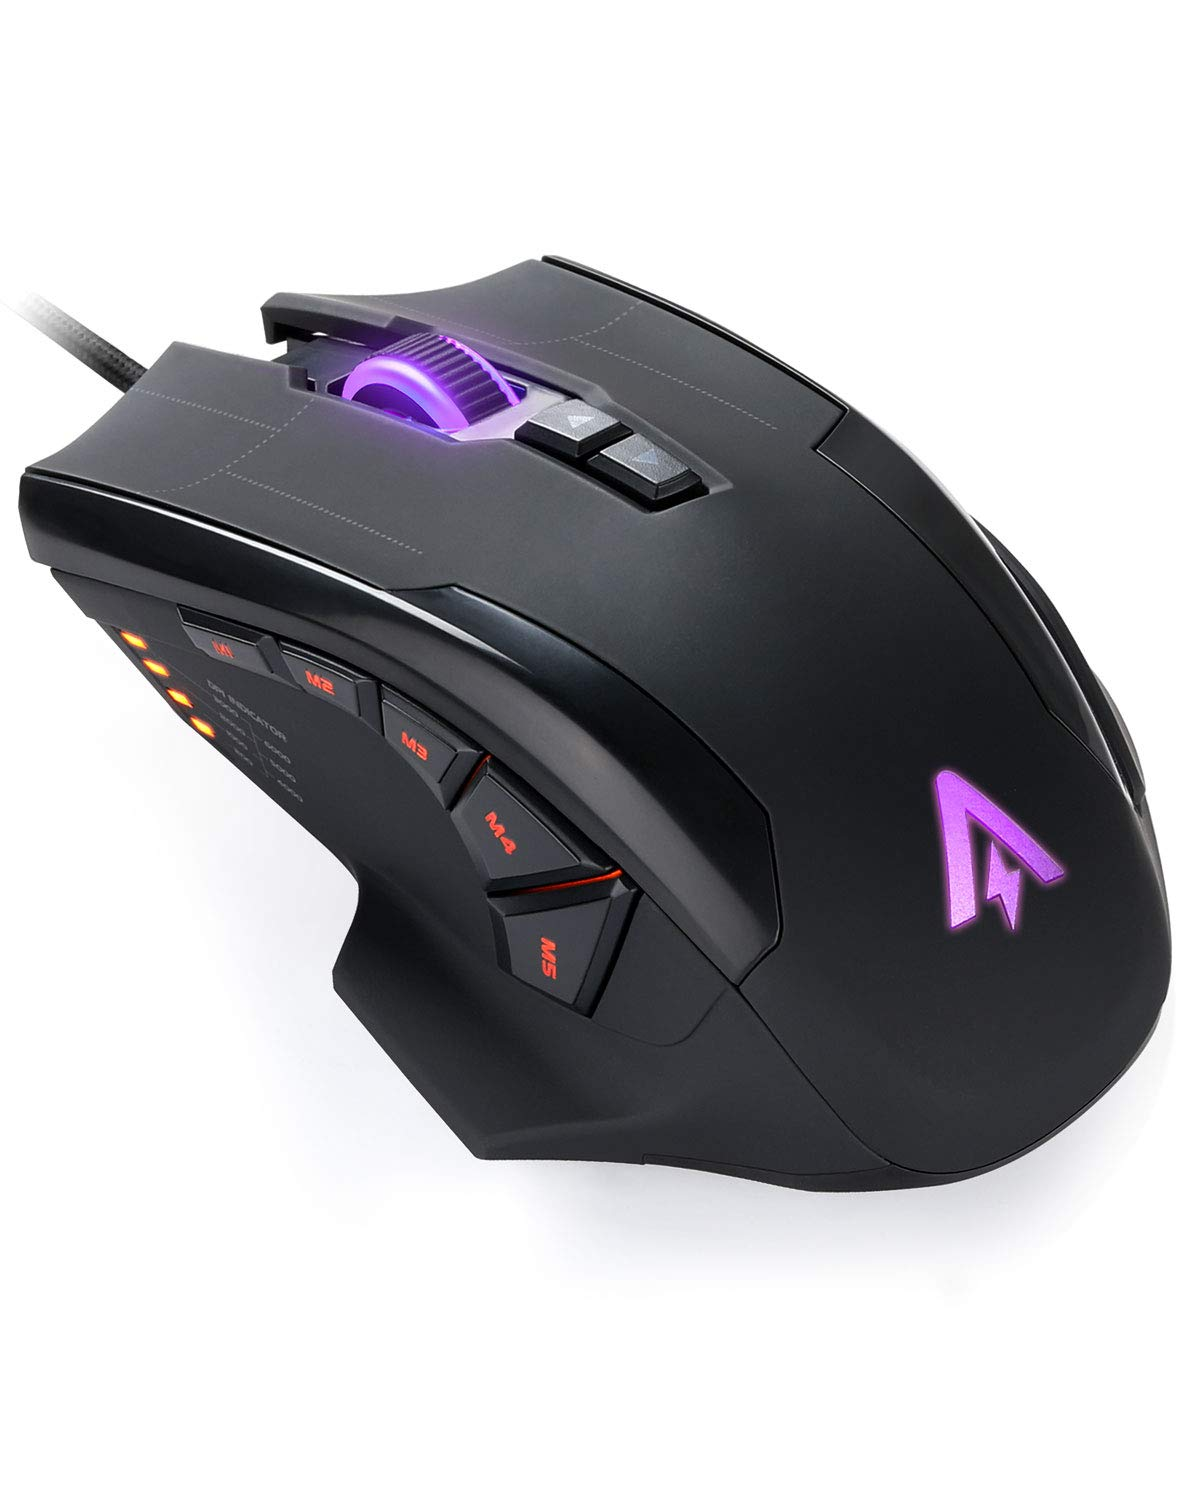 Anker High Precision Programmable Gaming Mouse with 6000 DPI, 1000 Hz Polling Rate, 10 Programmable Buttons, Ergonomic USB Computer Mouse, RGB Gamer Desktop Laptop PC Gaming Mouse